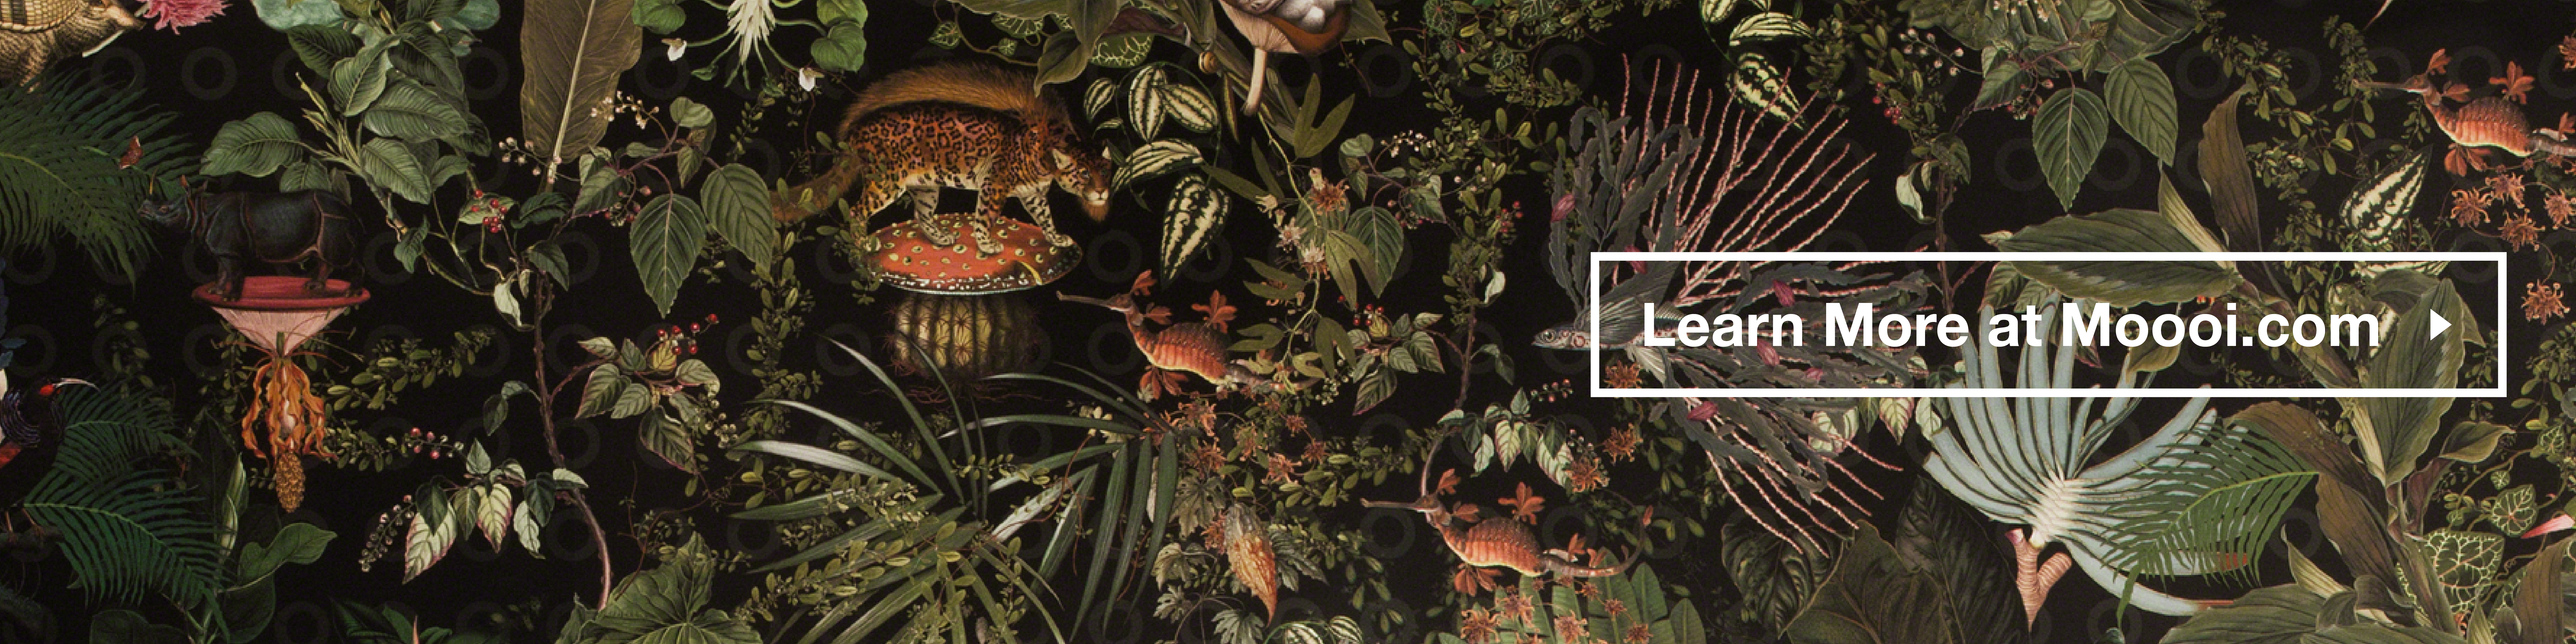 moooi partner page banner